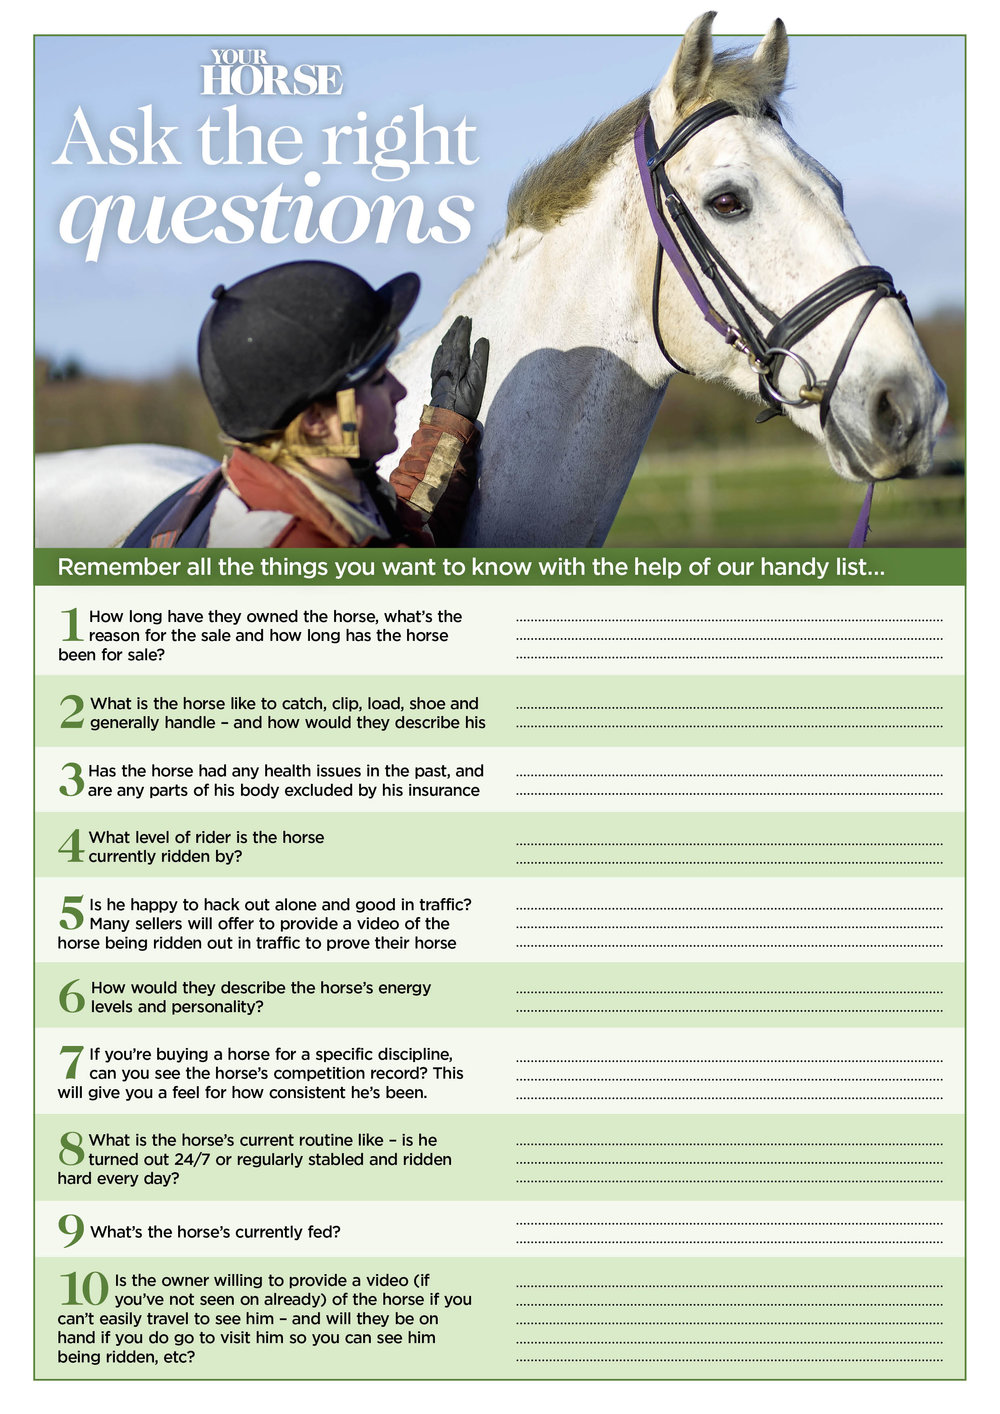 BUYING HORSE QUESTION LIST